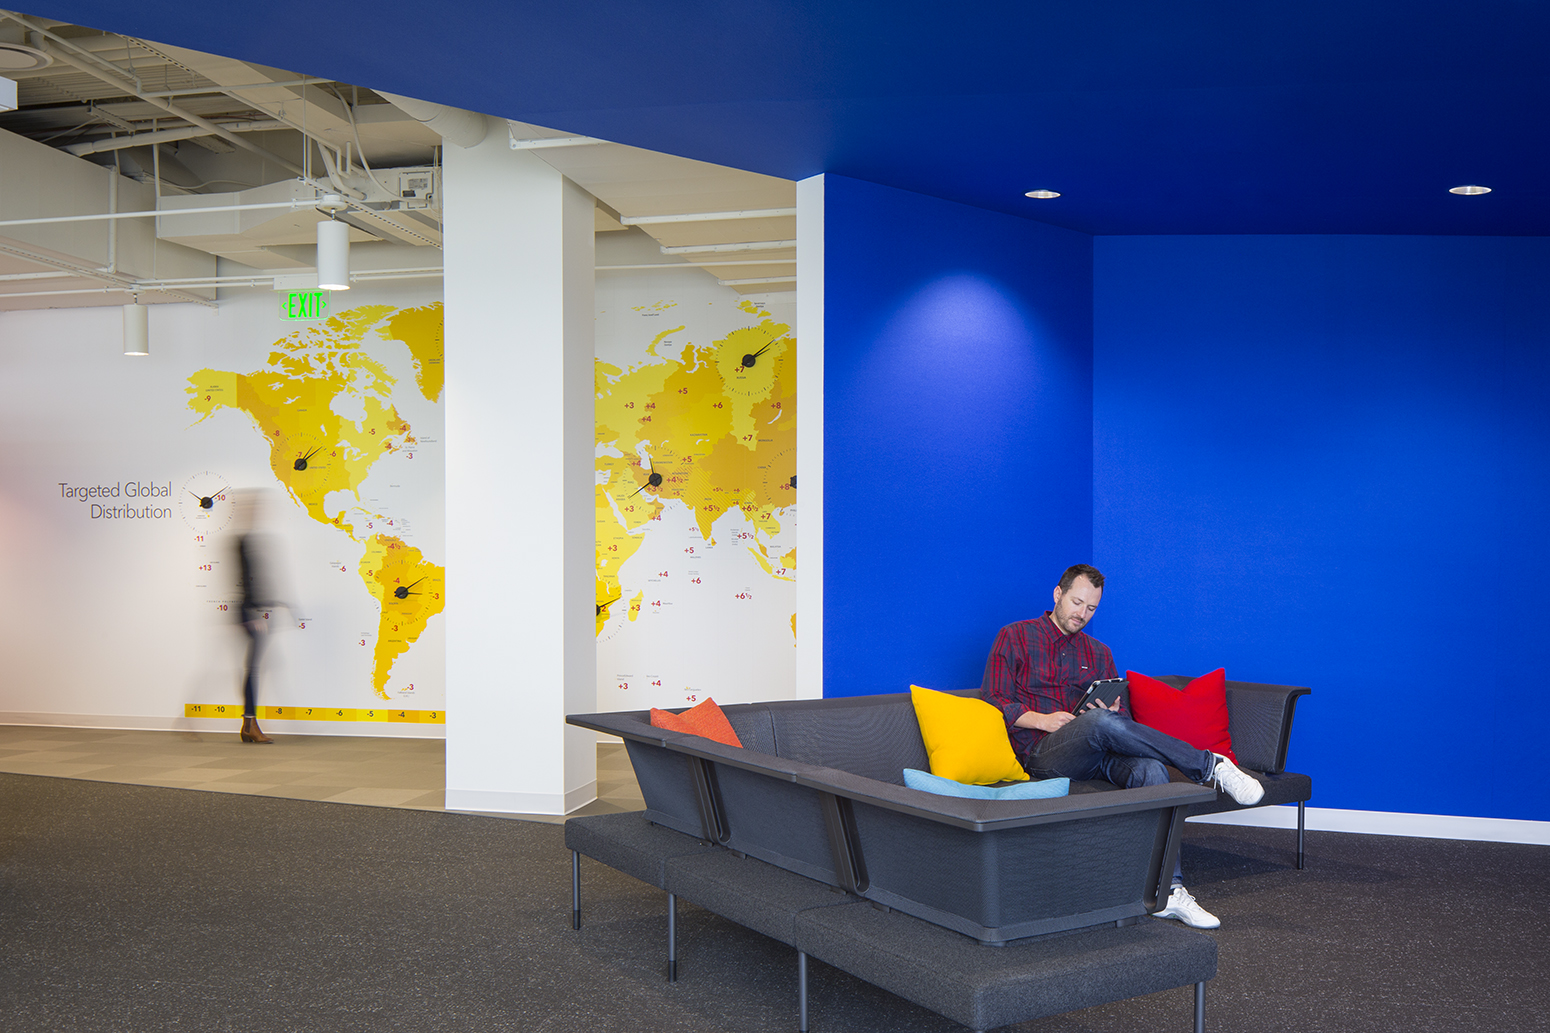 Man working on tablet in open walled room with blue felt walls while another employee walks in the backround against a global map wall.